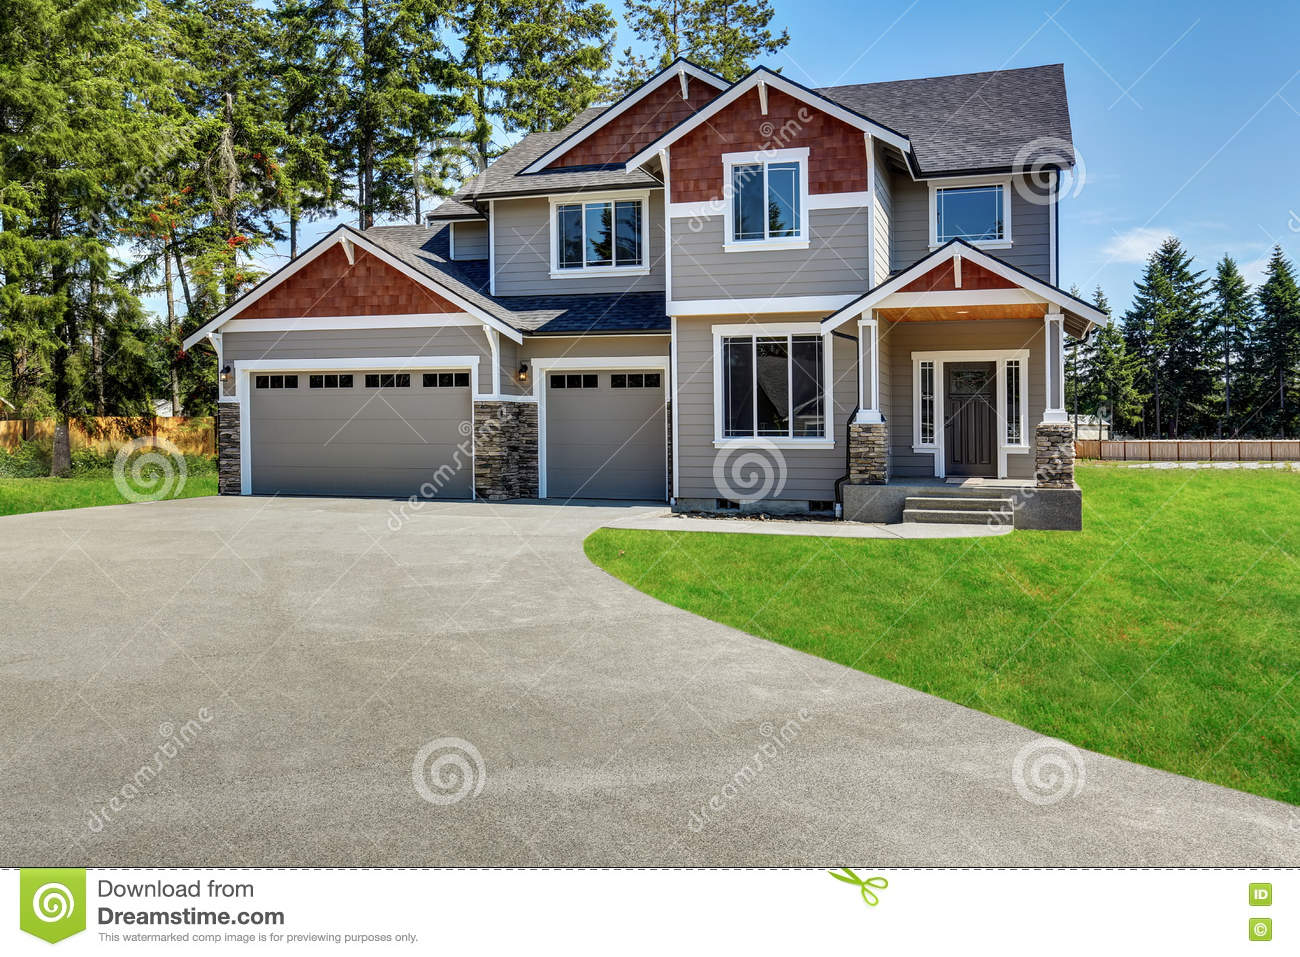 Craftsman American House With Rocks Trim Garage And Concrete Floor